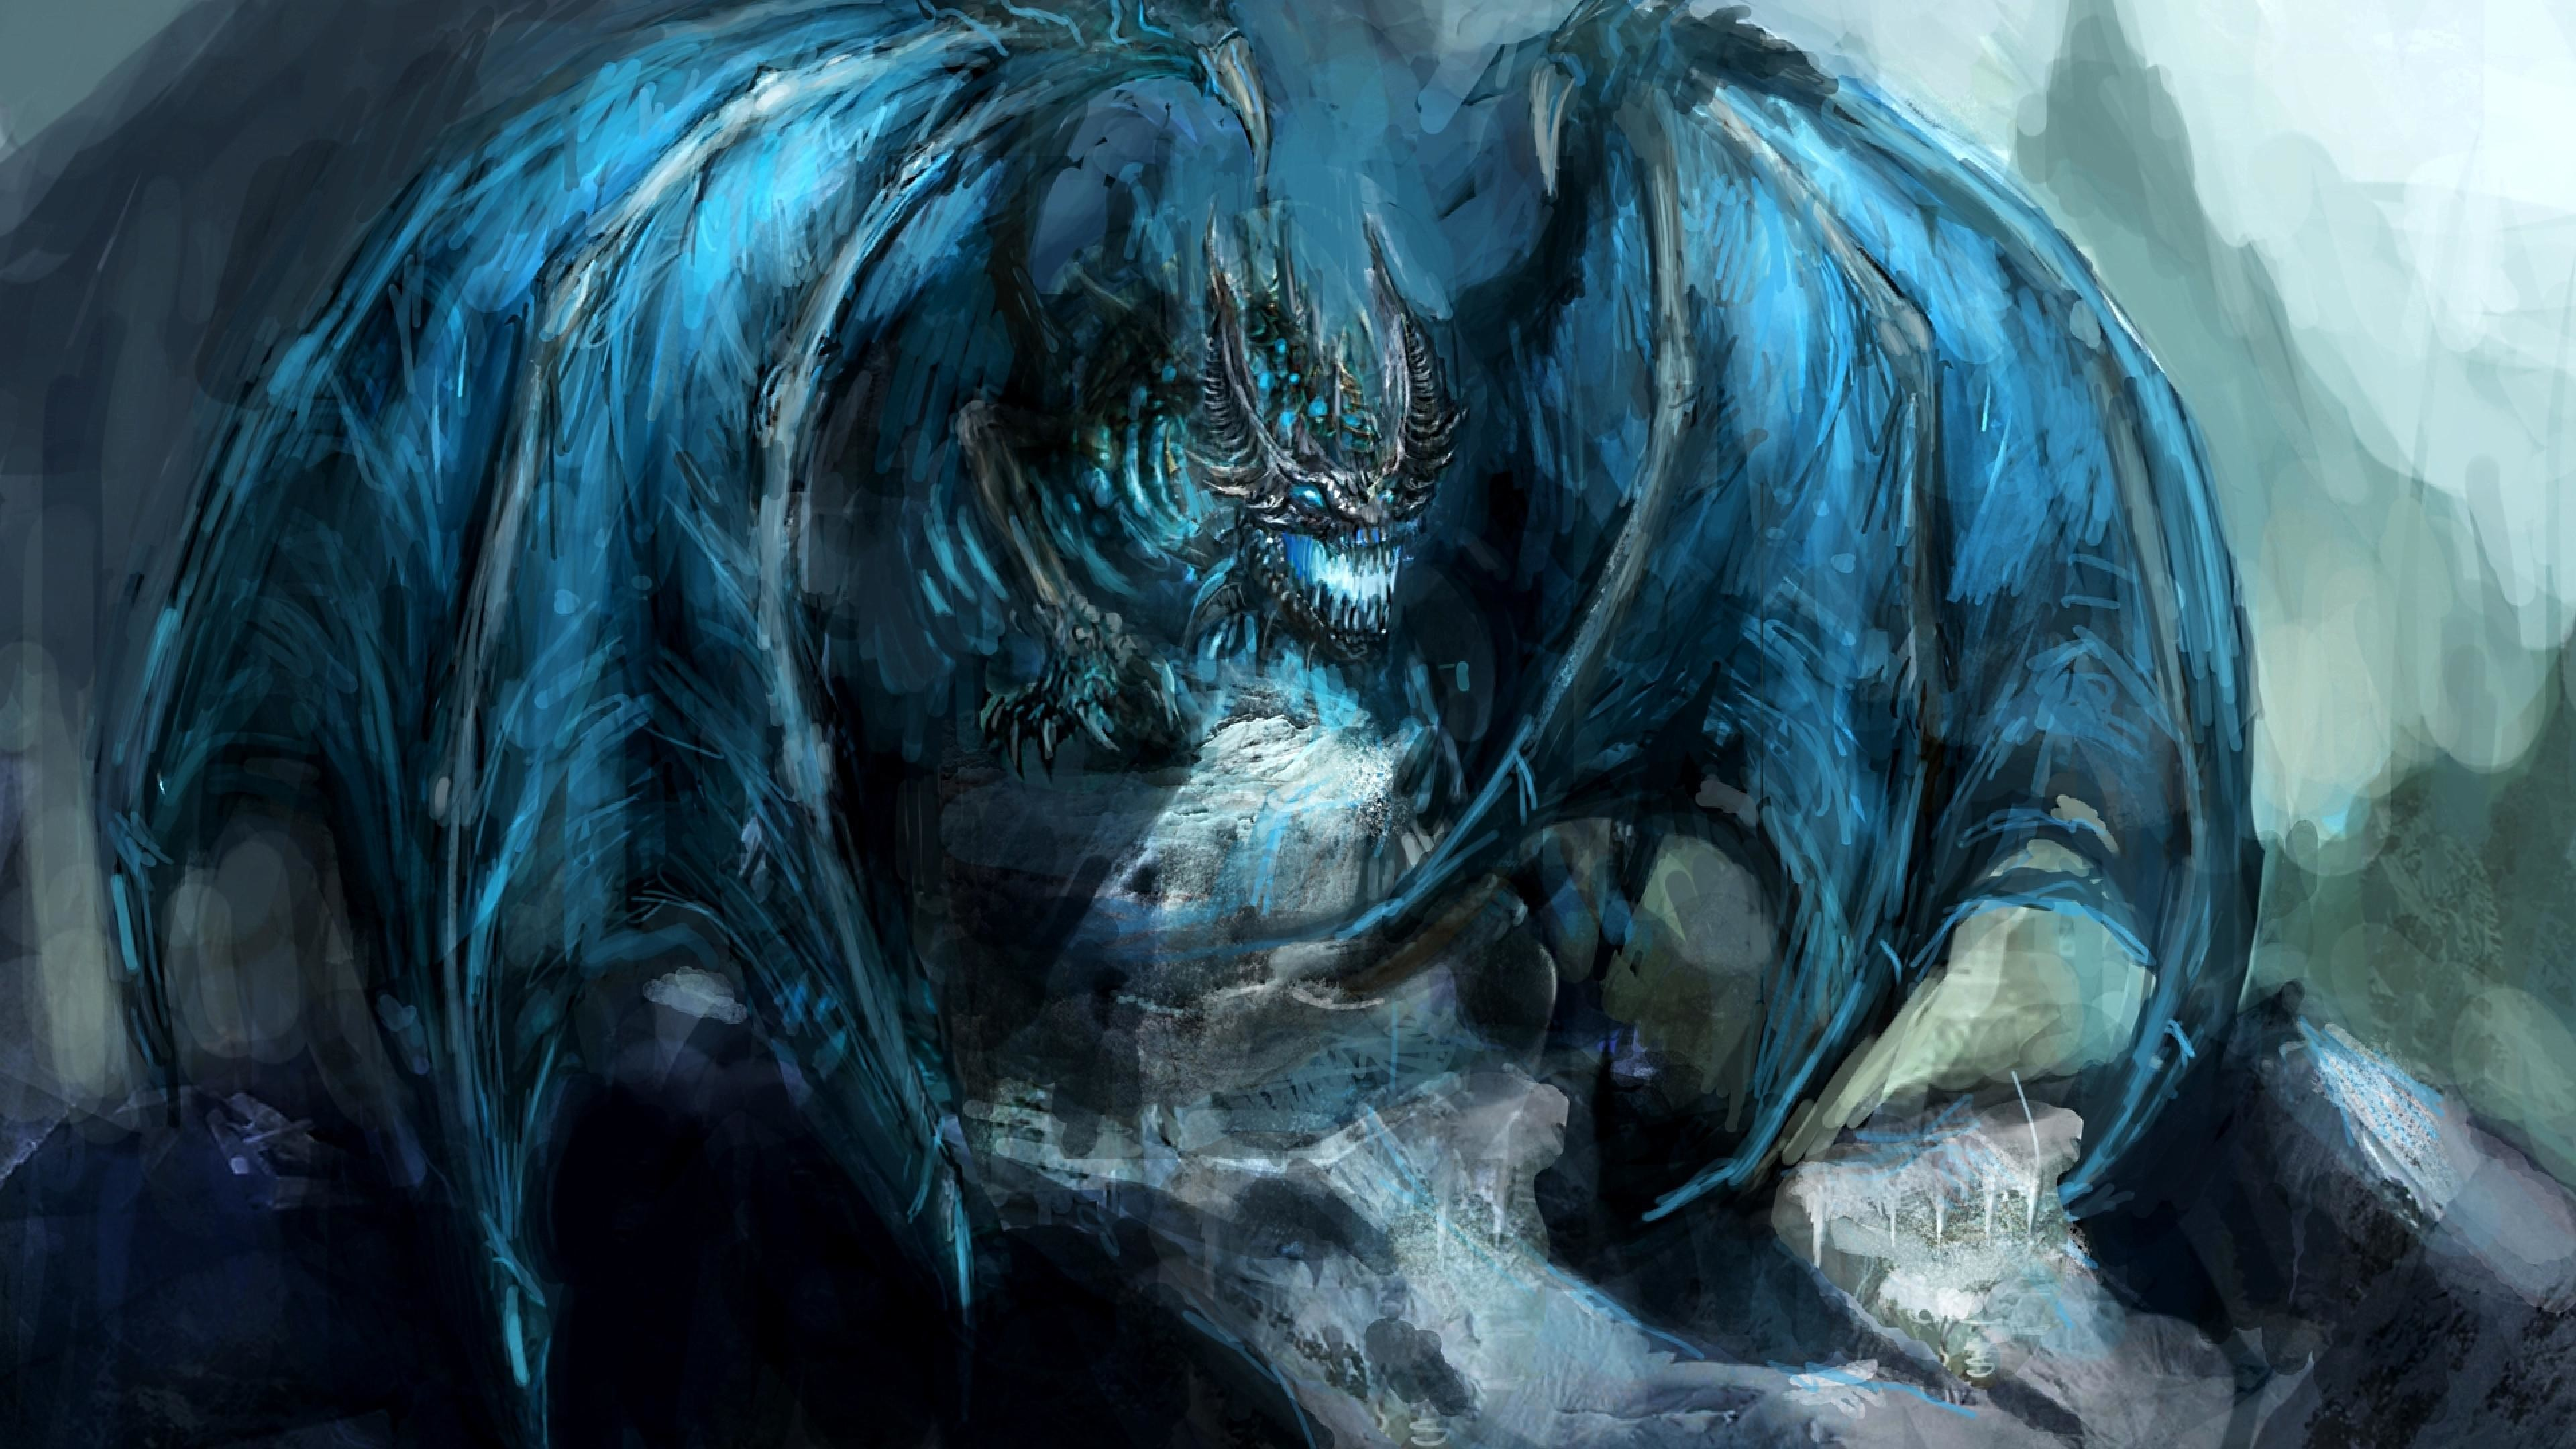 3840x2160 wallpaper.wiki-Ice-Dragon-Wallpaper-PIC-WPE003620